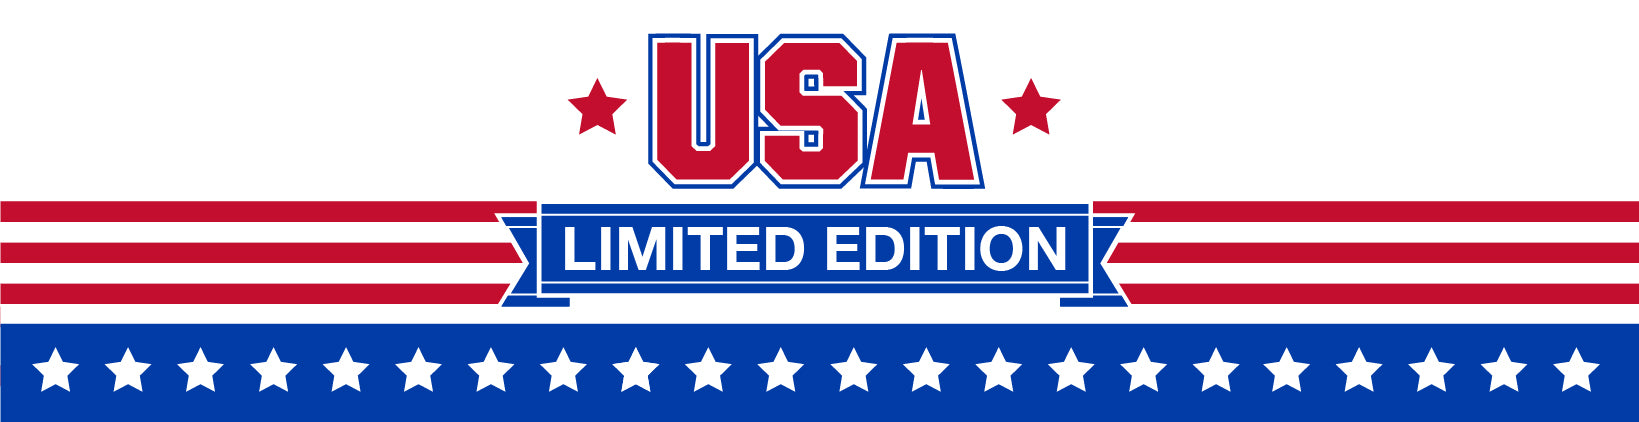 Limited Edition USA Collection